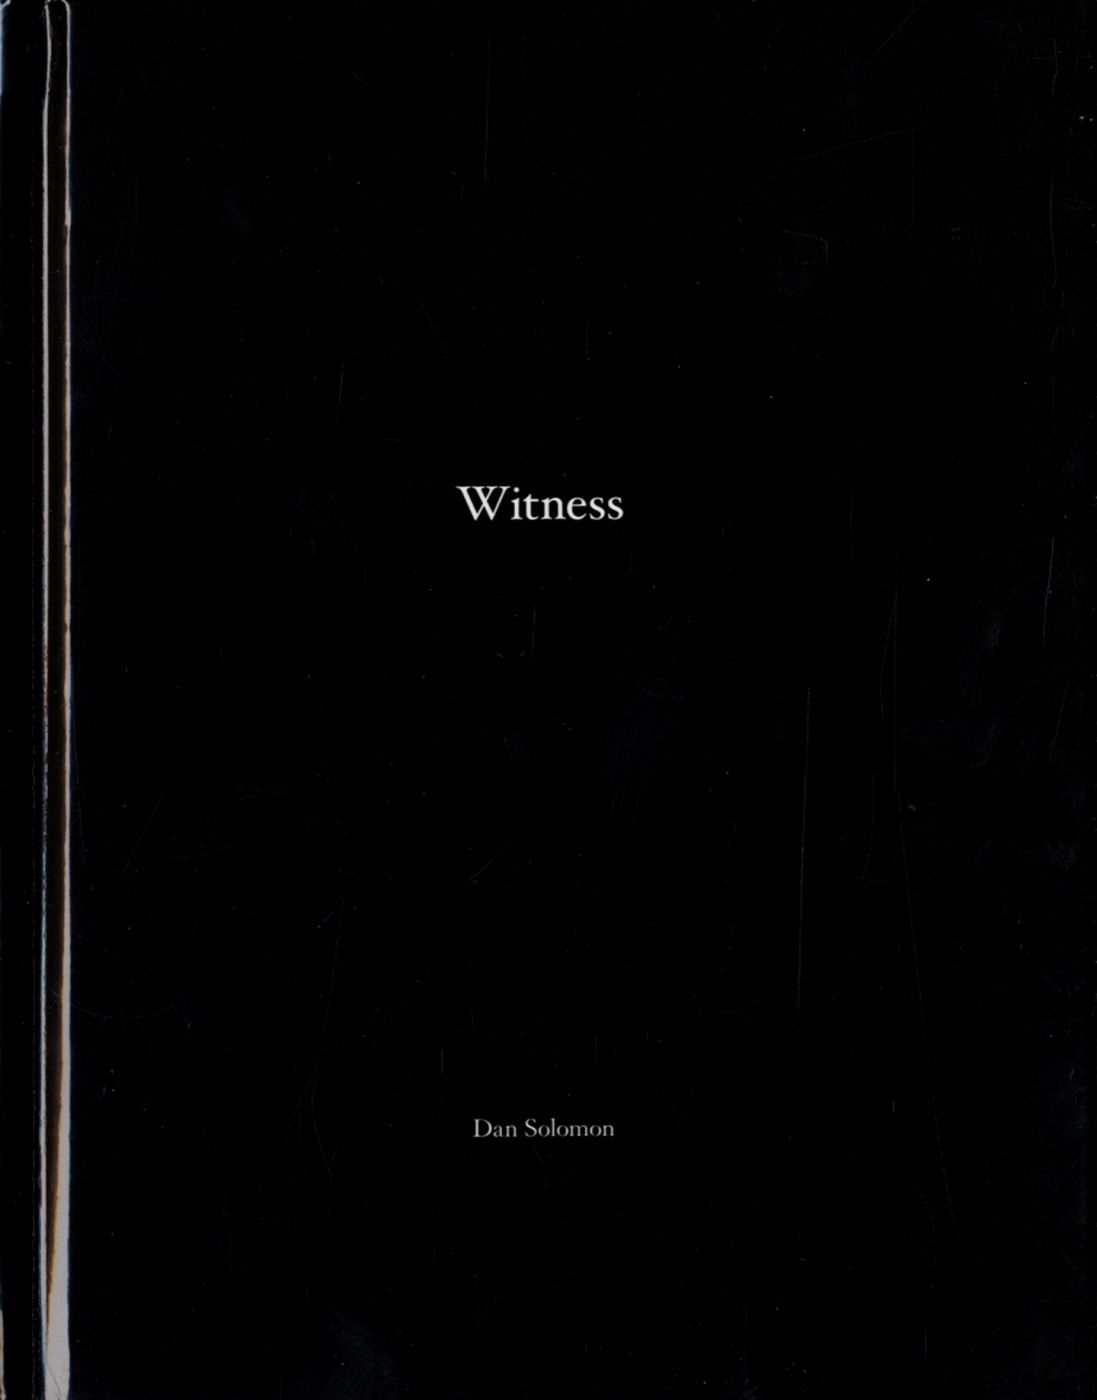 Dan Solomon: Witness (One Picture Book #83), Limited Edition (with Print)